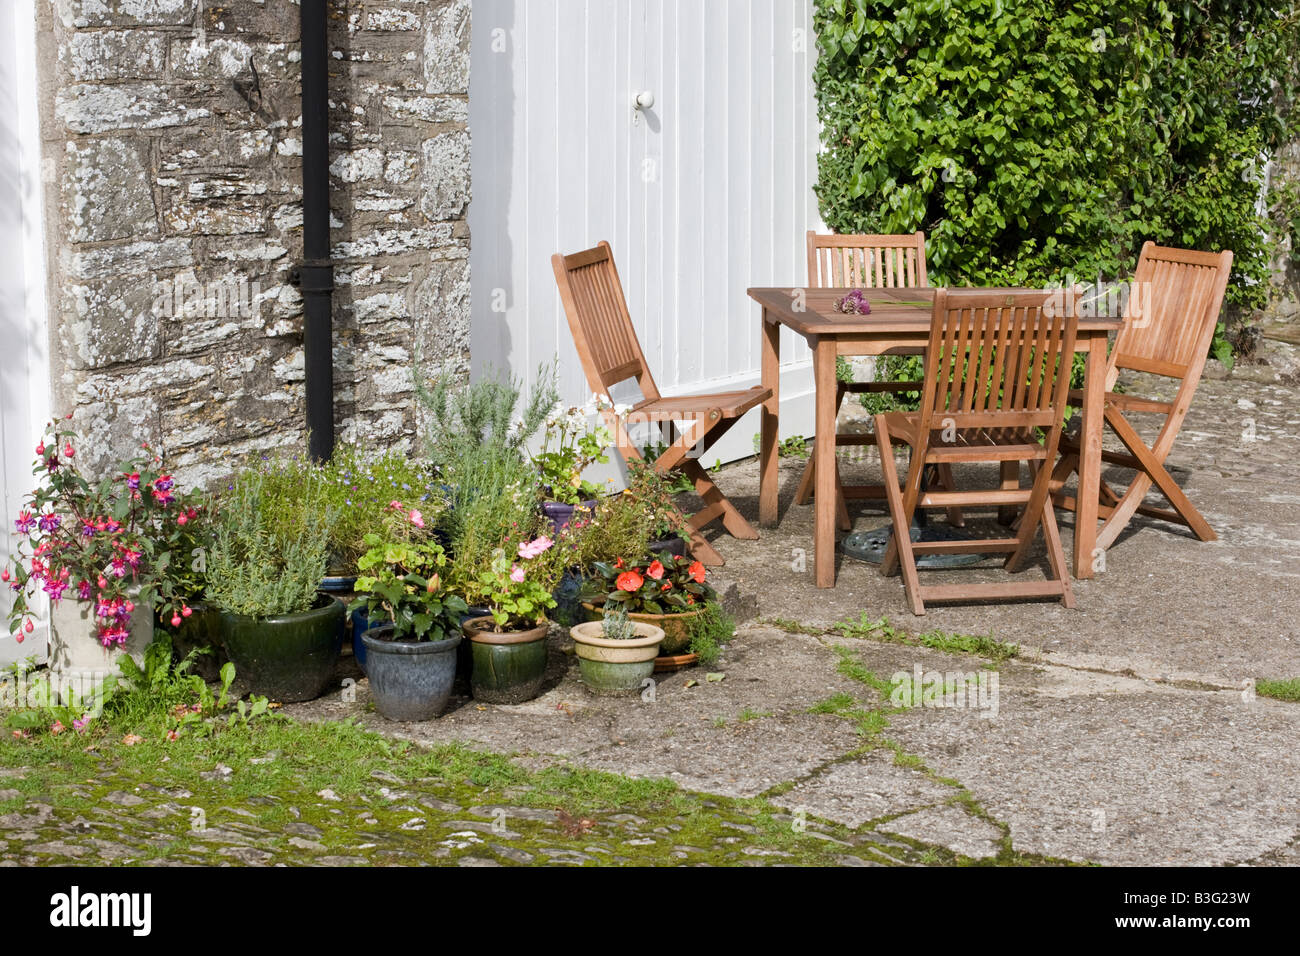 Picnic table and chairs outside country cottage - Stock Image